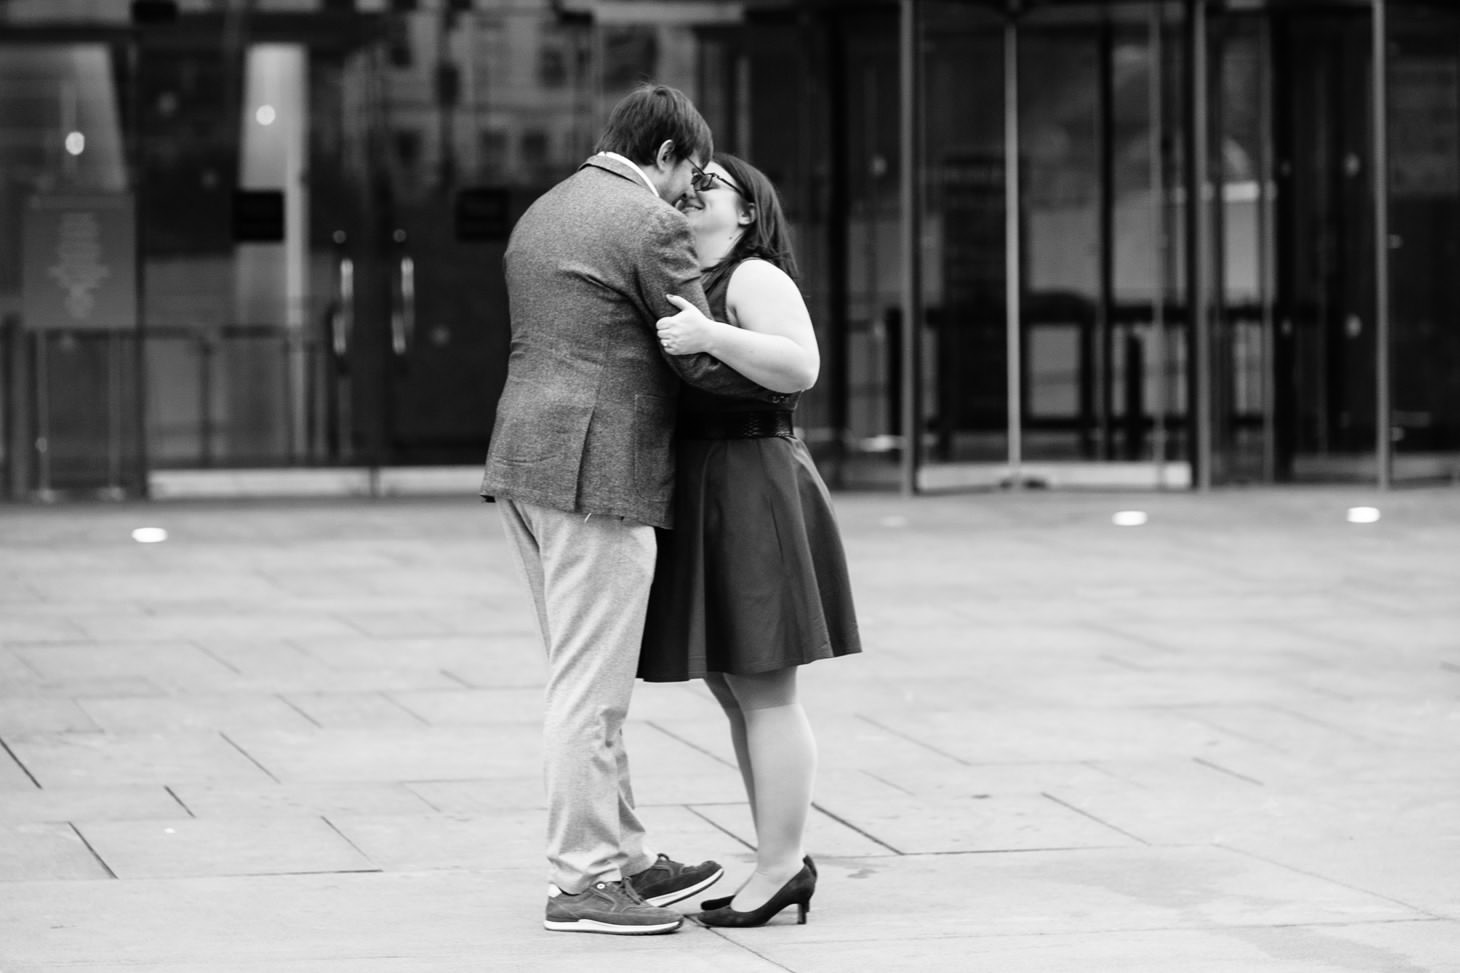 010-nyc-wedding-photographer-puppy-museum-of-natural-history-mud-coffee-fall-central-park-engagement.jpg